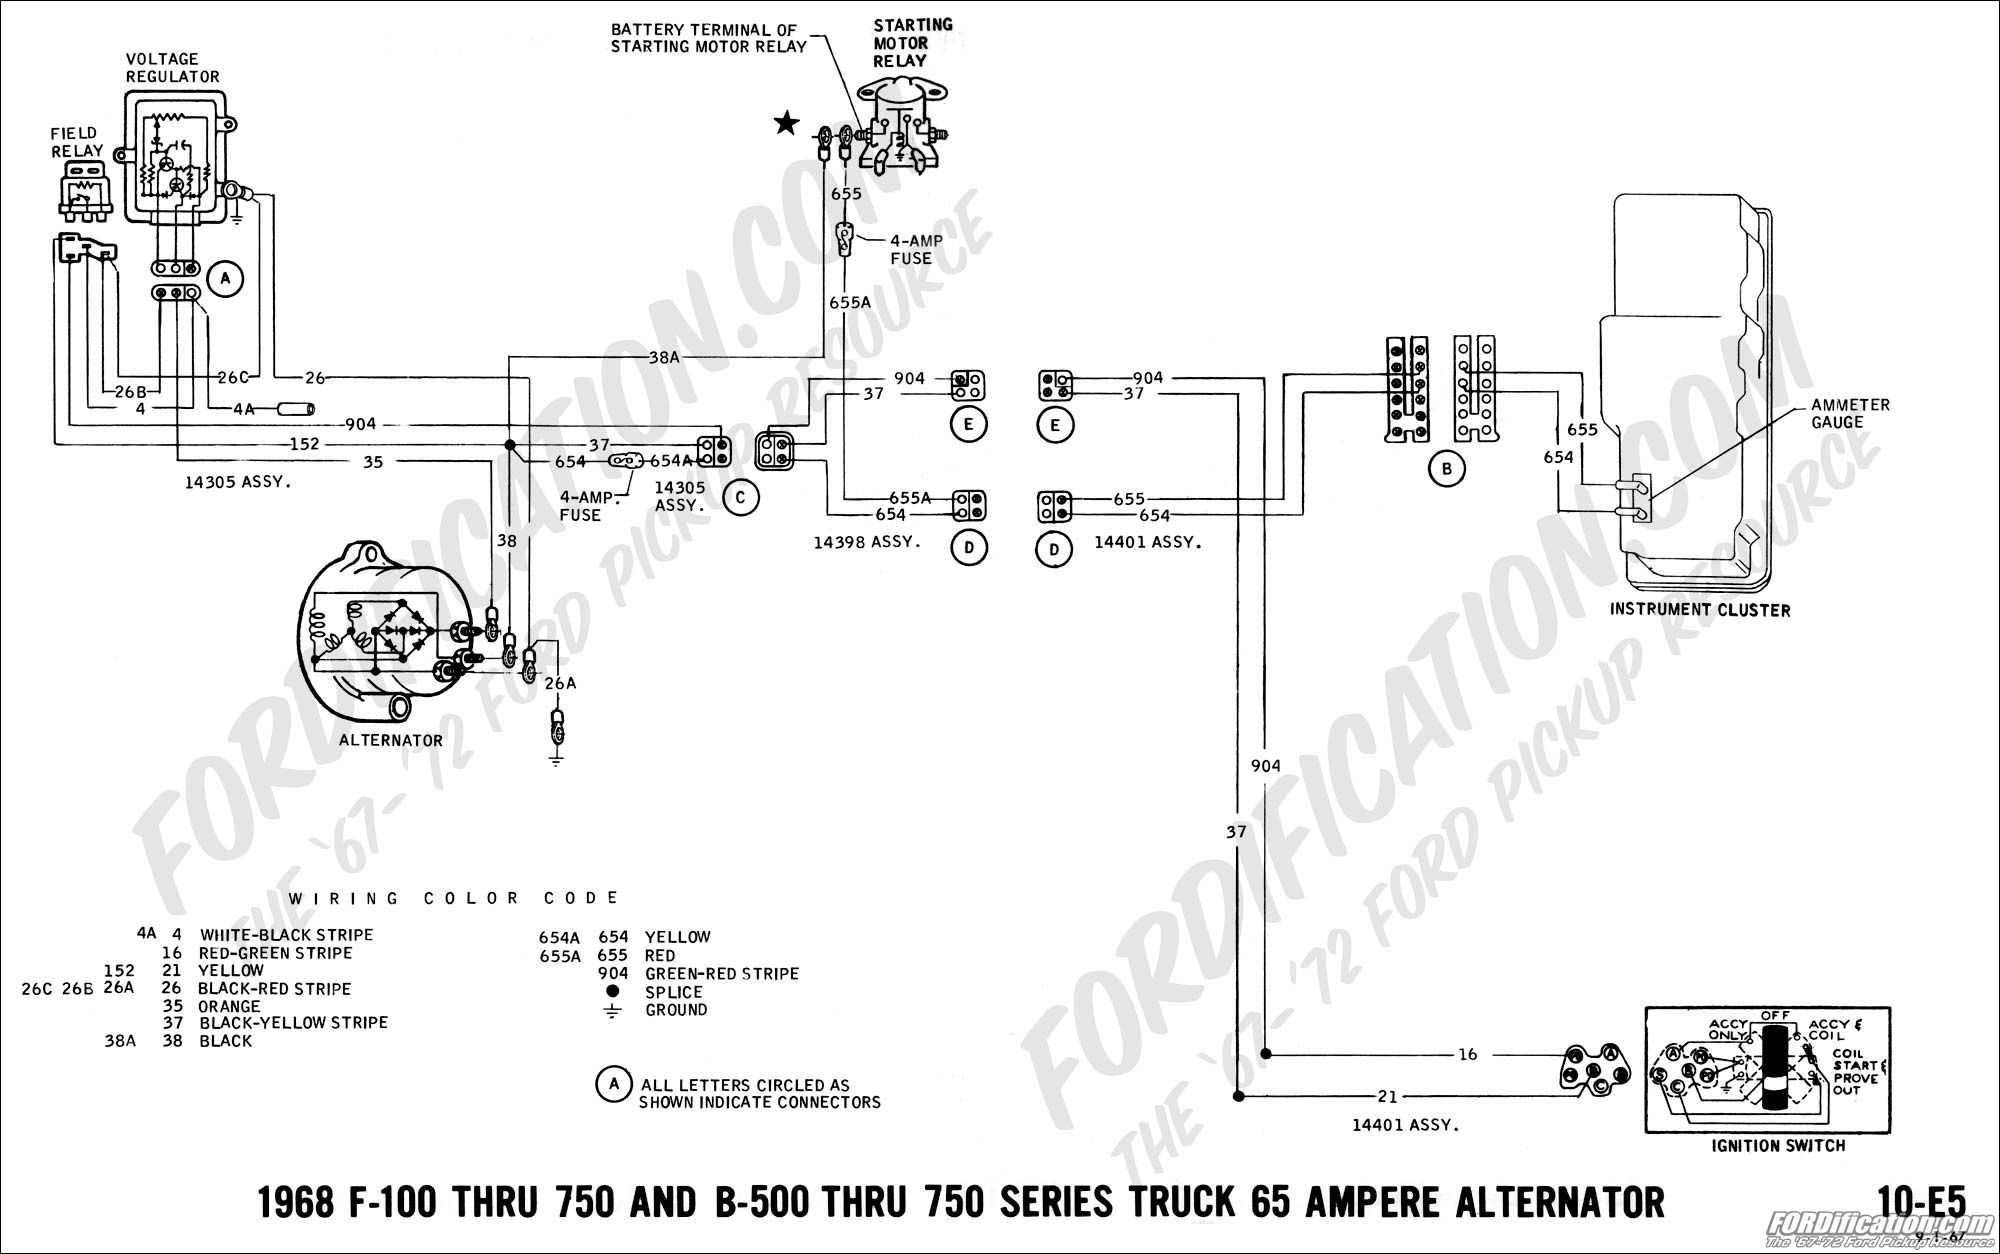 1956 ford alternator wiring diagram electrical diagrams schematics 1965 mustang alternator wiring diagram 1965 ford alternator [ 2000 x 1254 Pixel ]